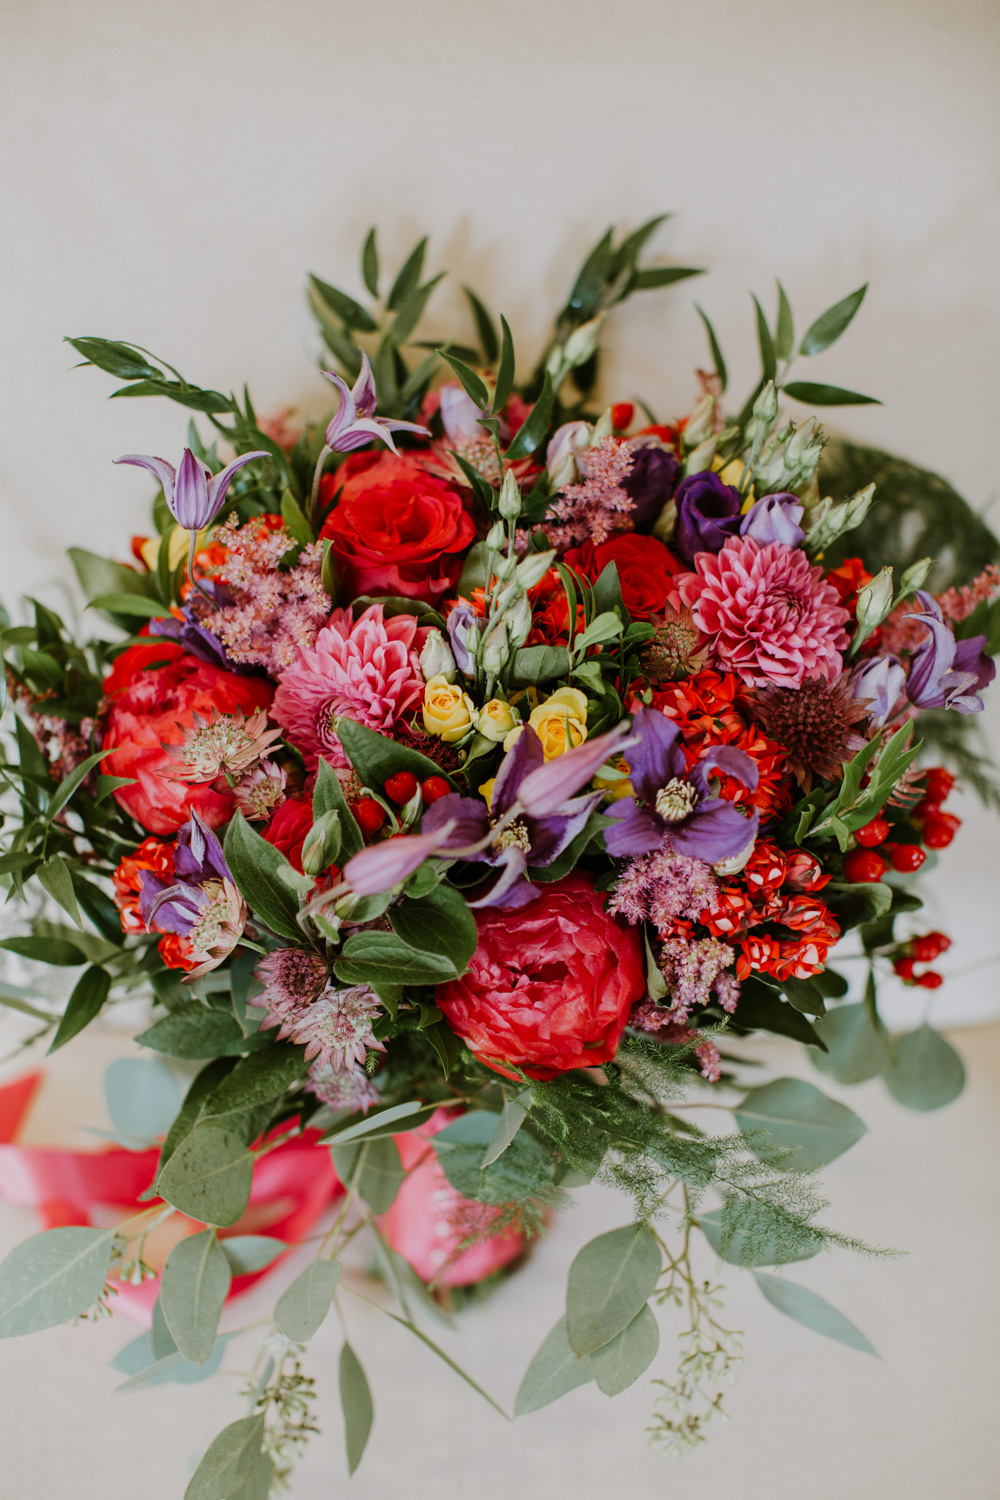 Bouquet Flowers Bride Bridal Pink Red Purple Greenery Foliage Peony Rose Notley Abbey Wedding Alexandra Jane Photography